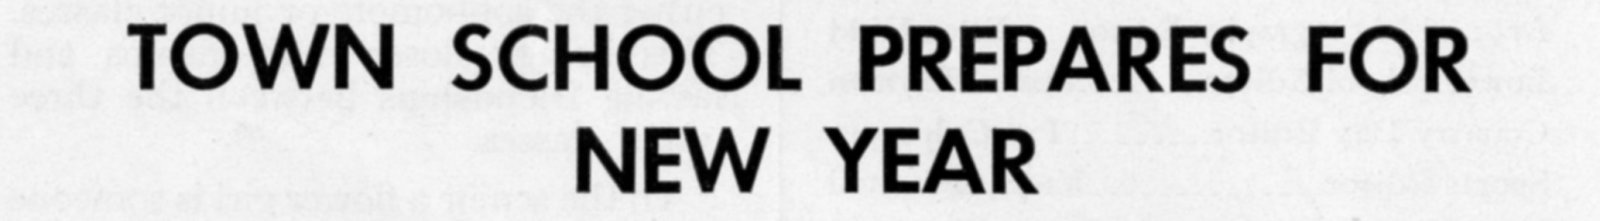 """Town School Prepares For New Year\"" from The Match, Vol. XIV, No. 1, November 1958"